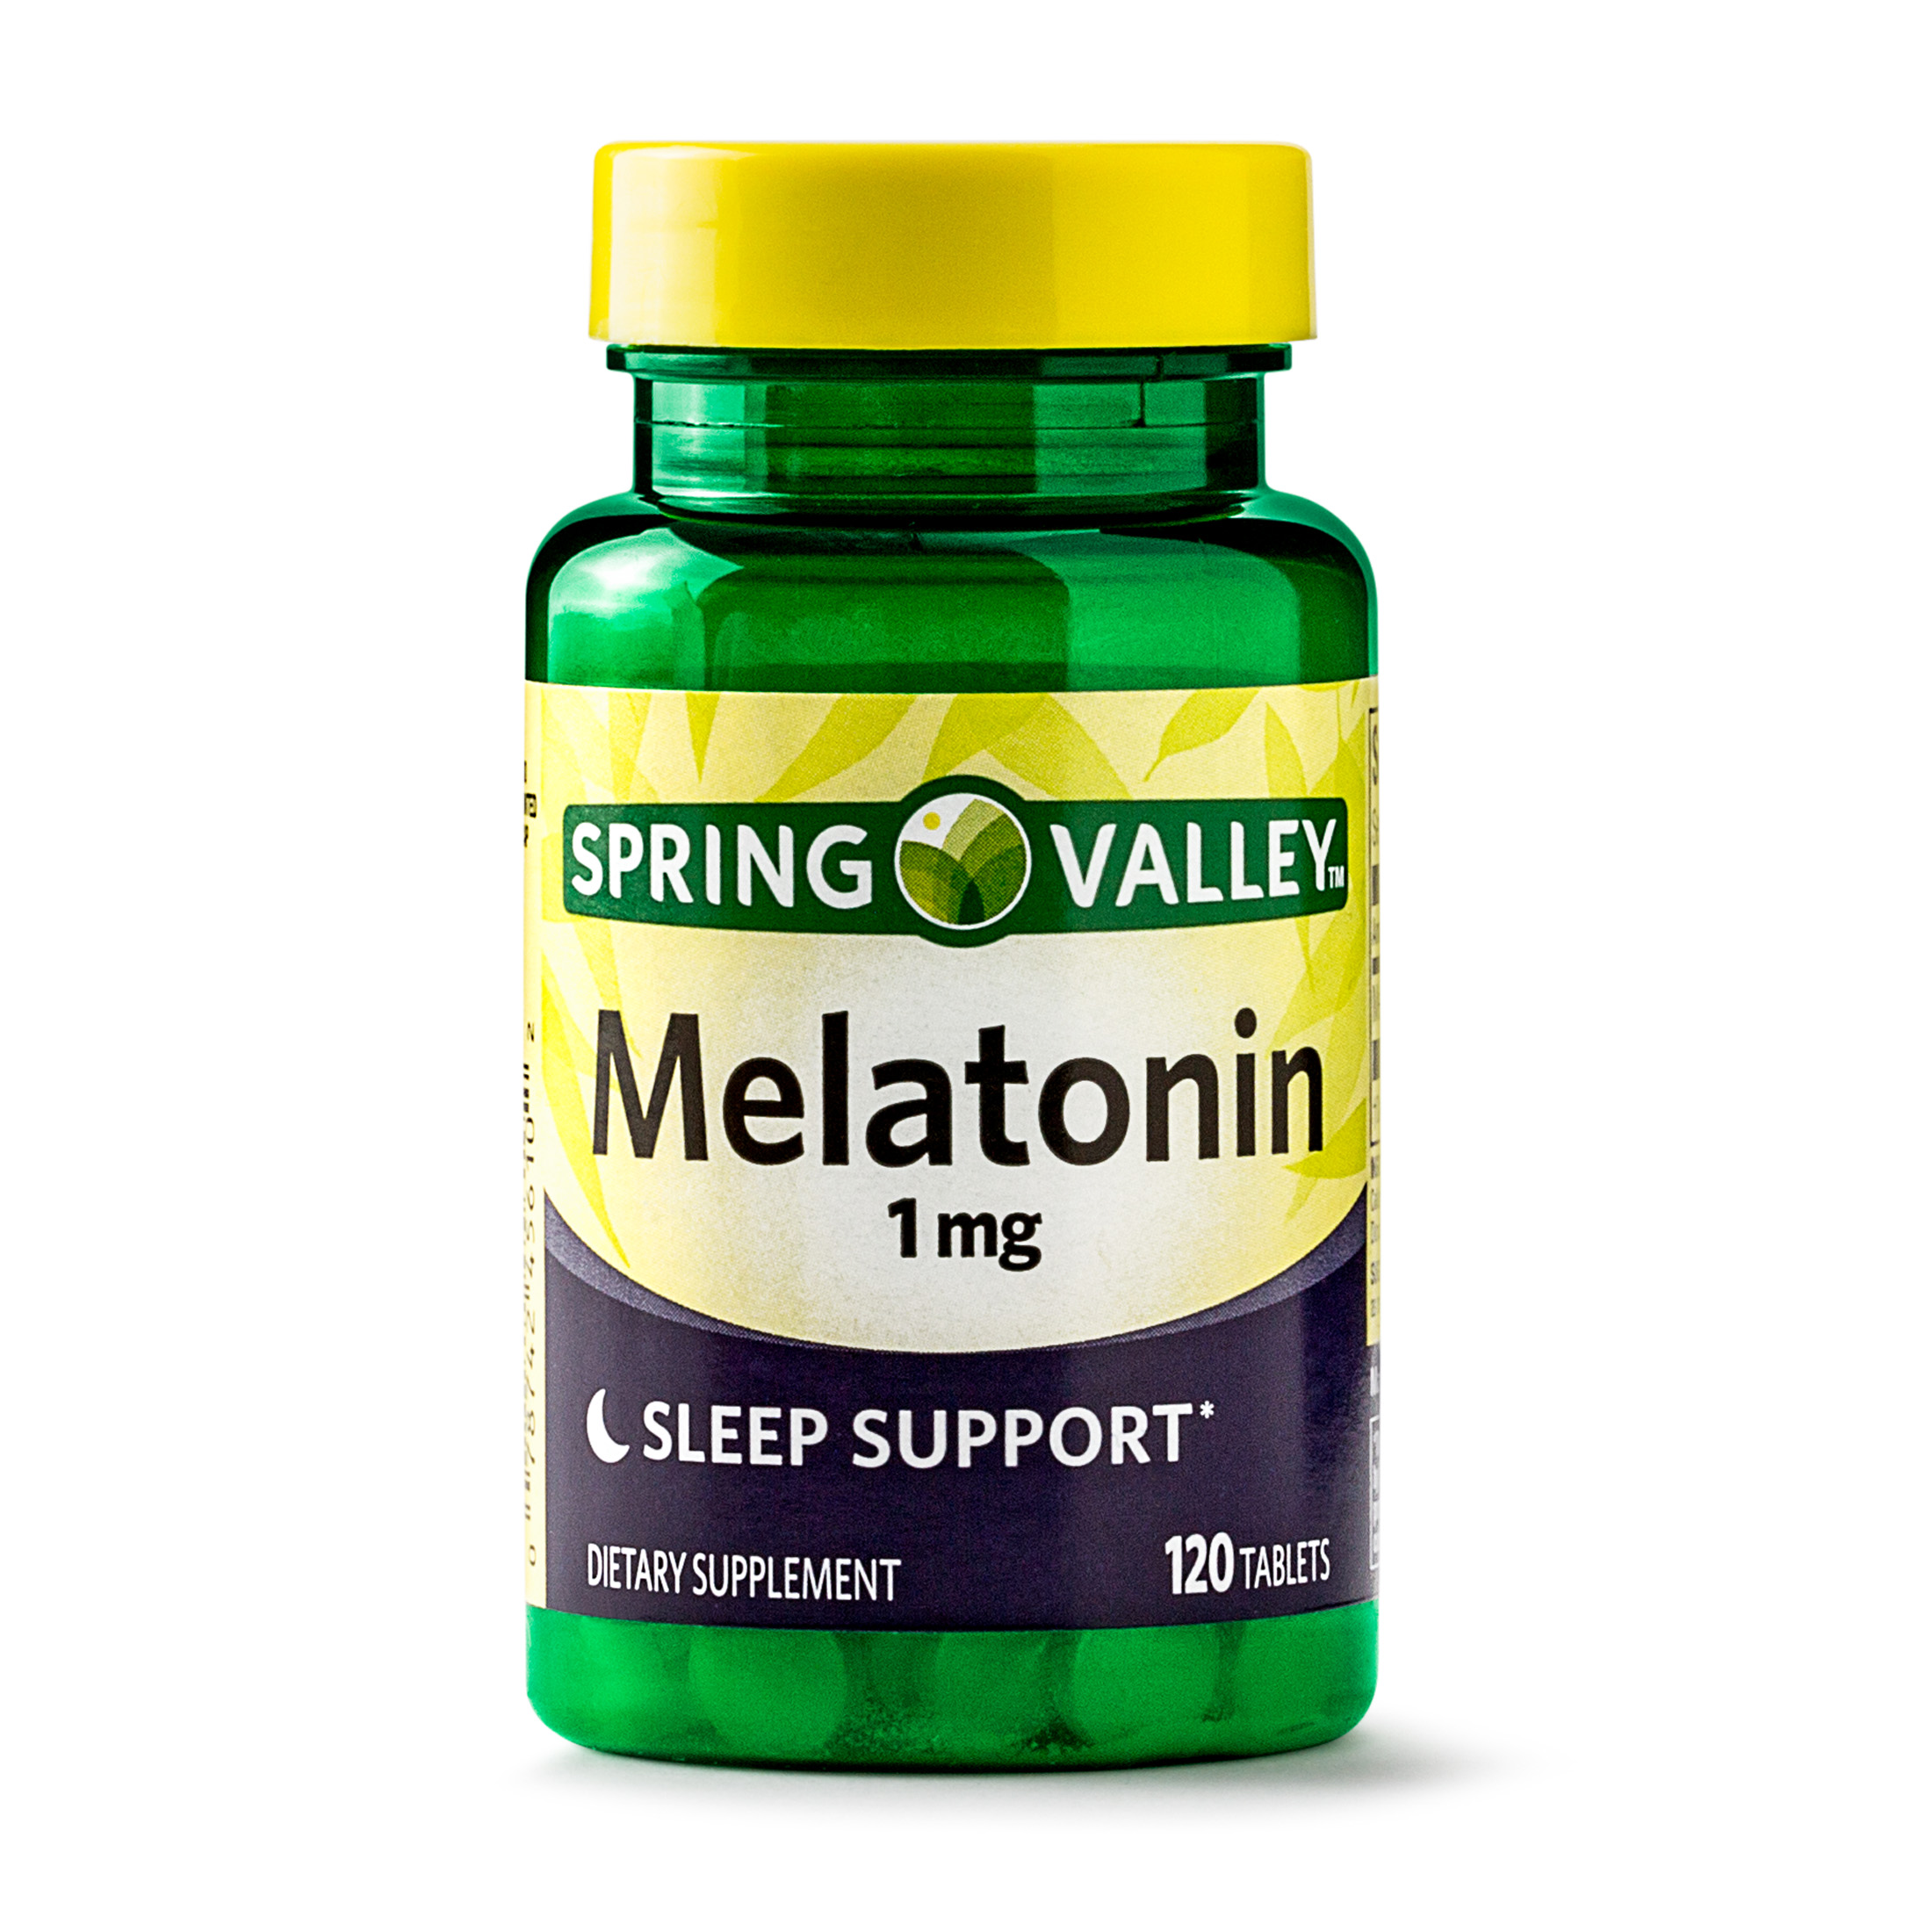 (2 Pack) Spring Valley Melatonin Tablets, 1 mg, 120 Ct